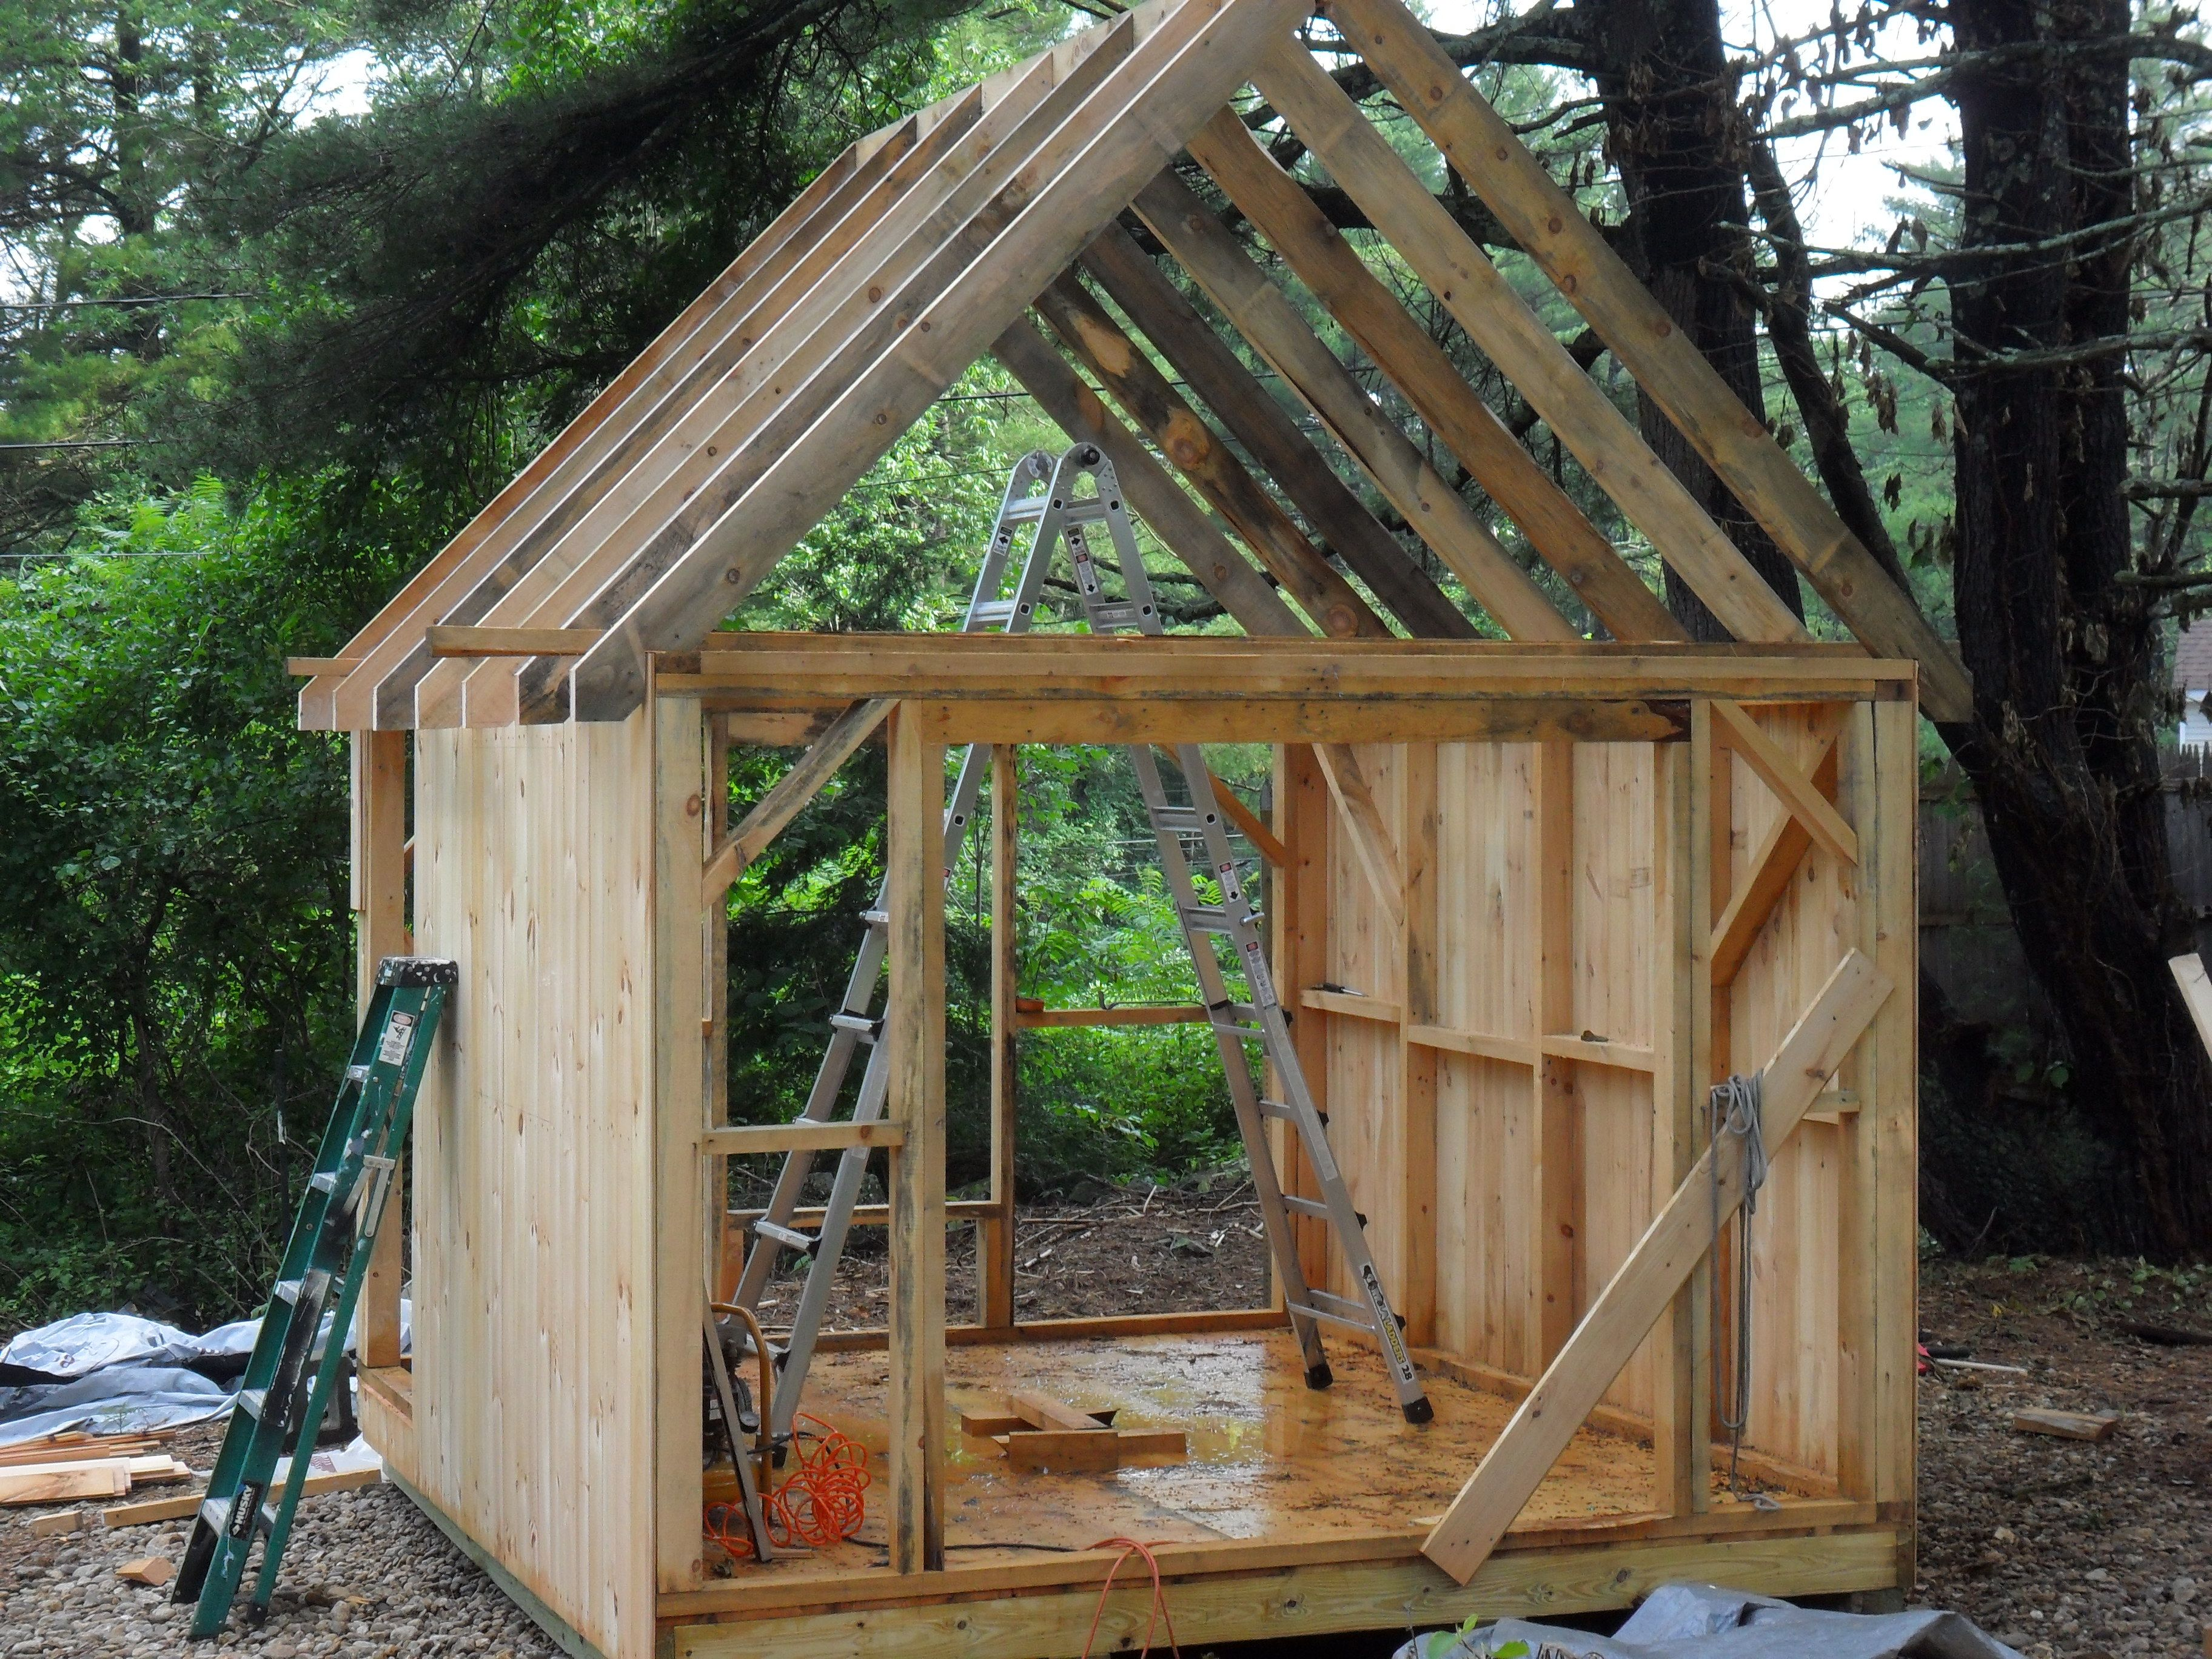 boyz wood shed storage builders bird cabin cottages kits small for has dealership dealers mini opportunities cheap sheds cabins